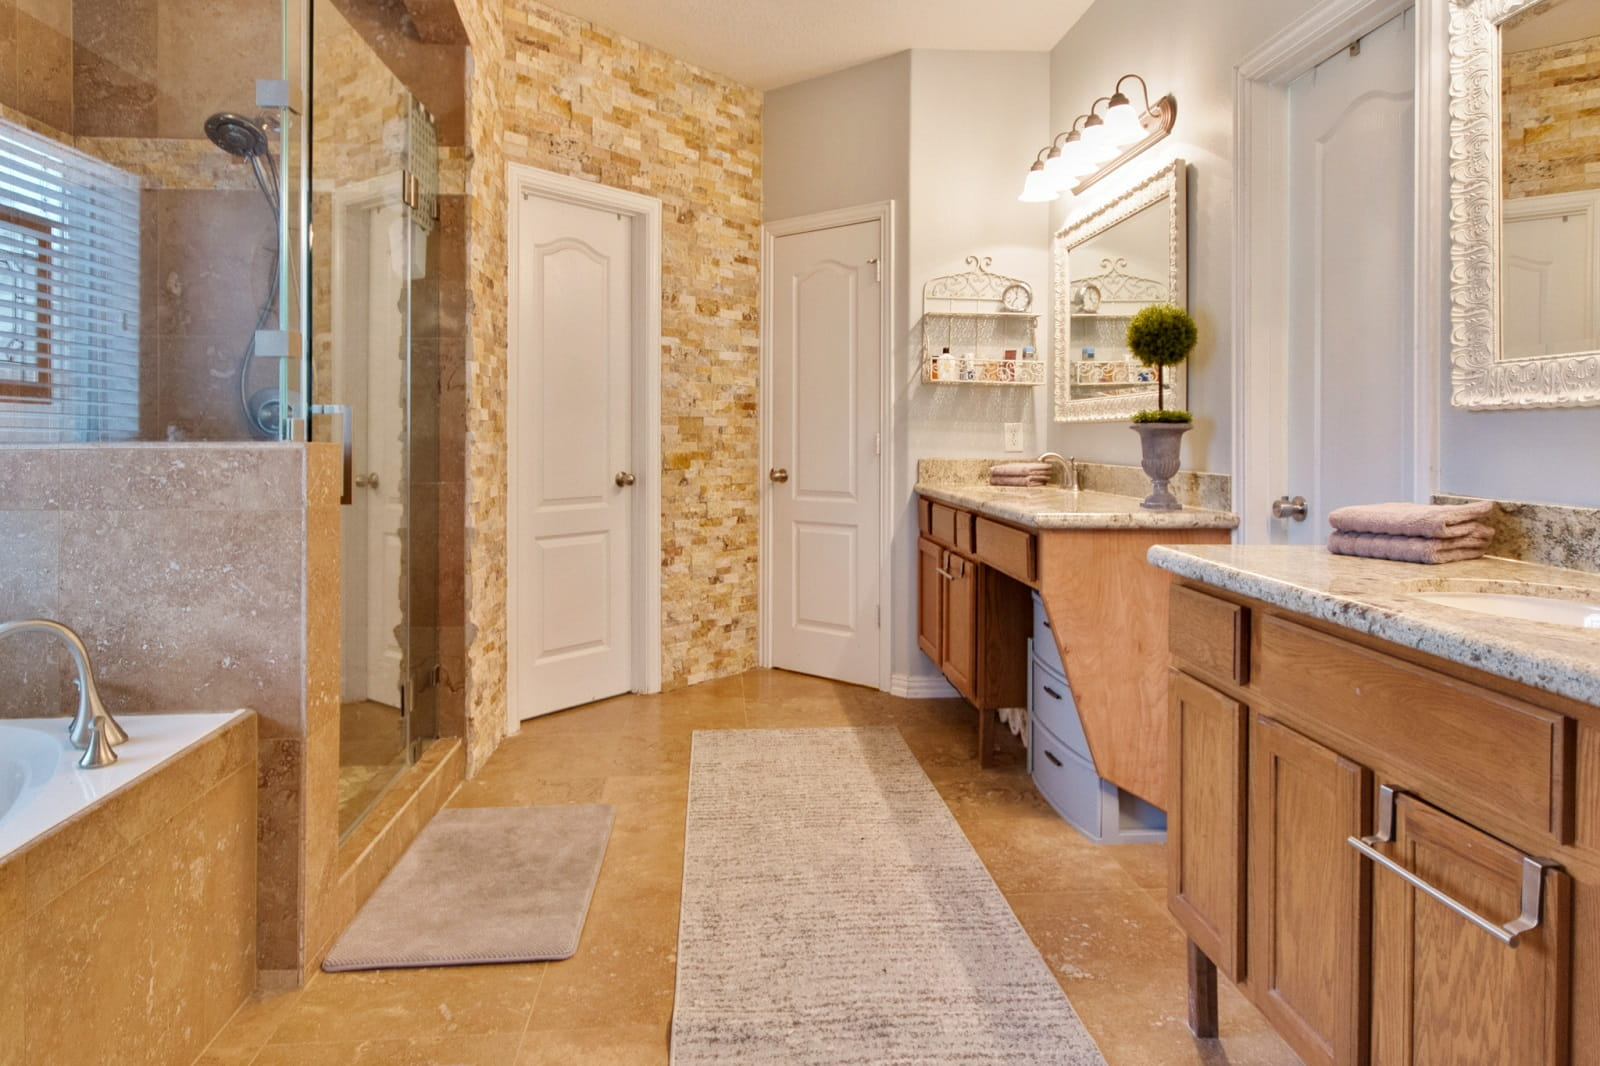 Real Estate Photographers in The Woodlands - TX - Bath View